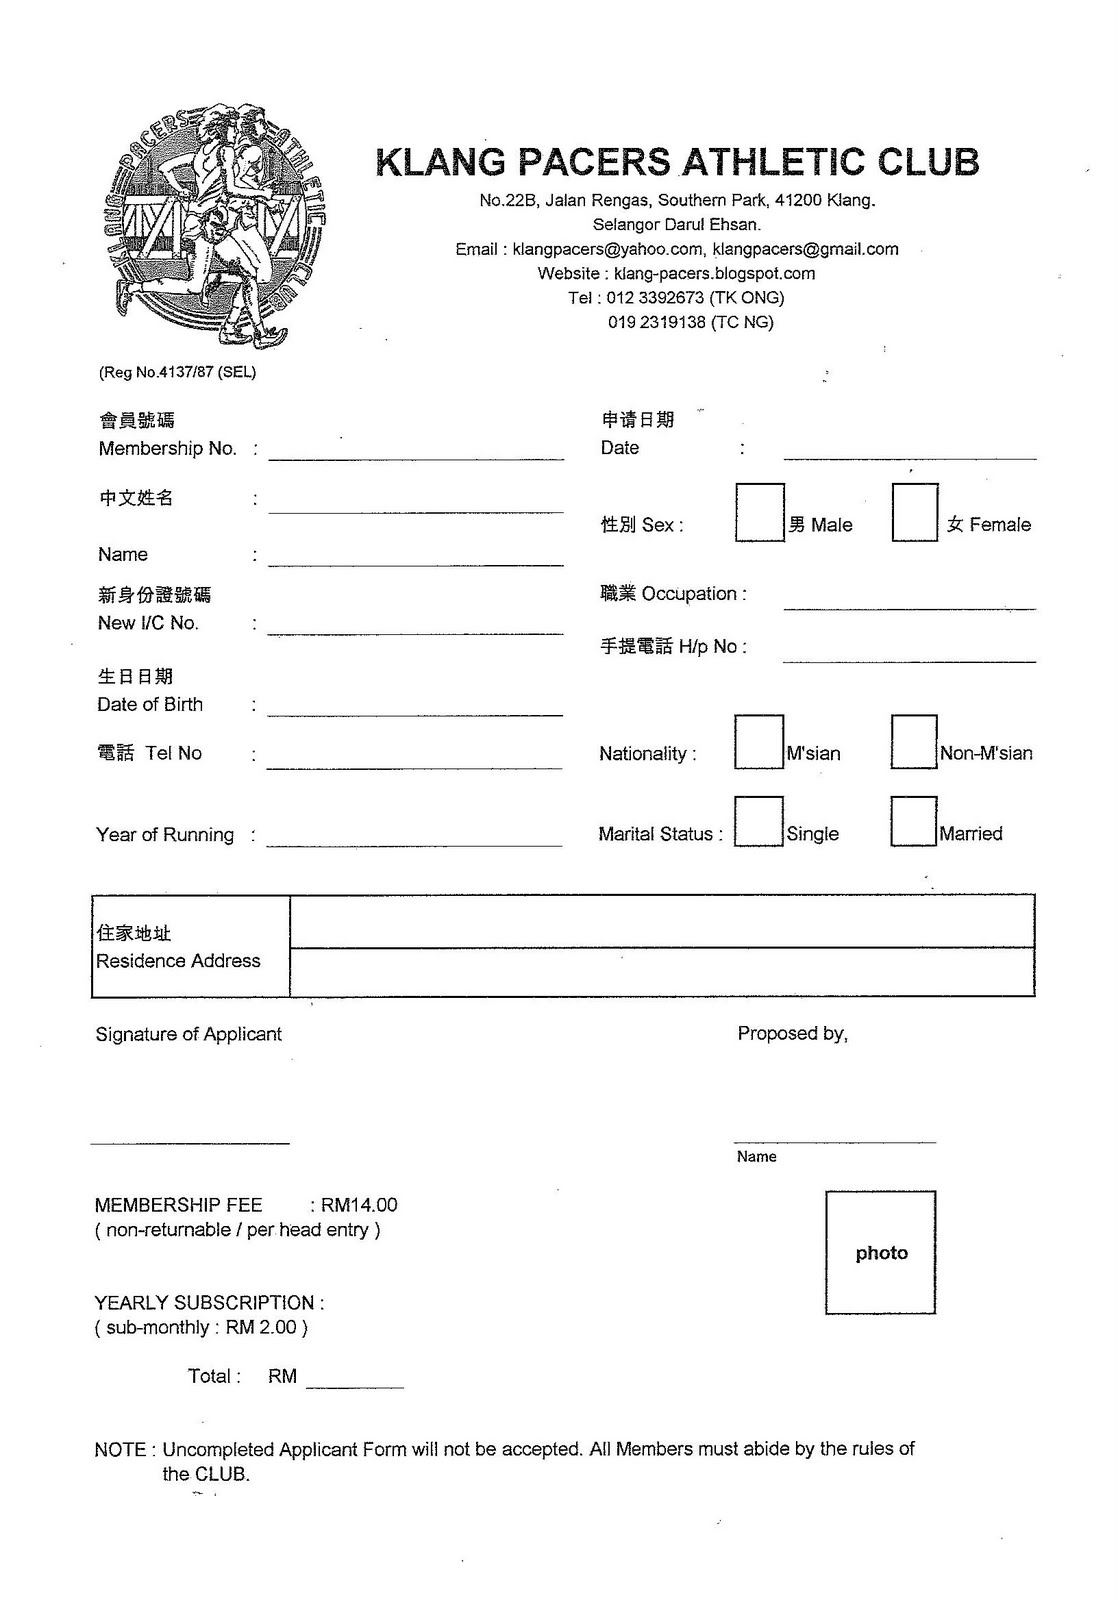 Membership form template pictures to pin on pinterest for Pta membership card template